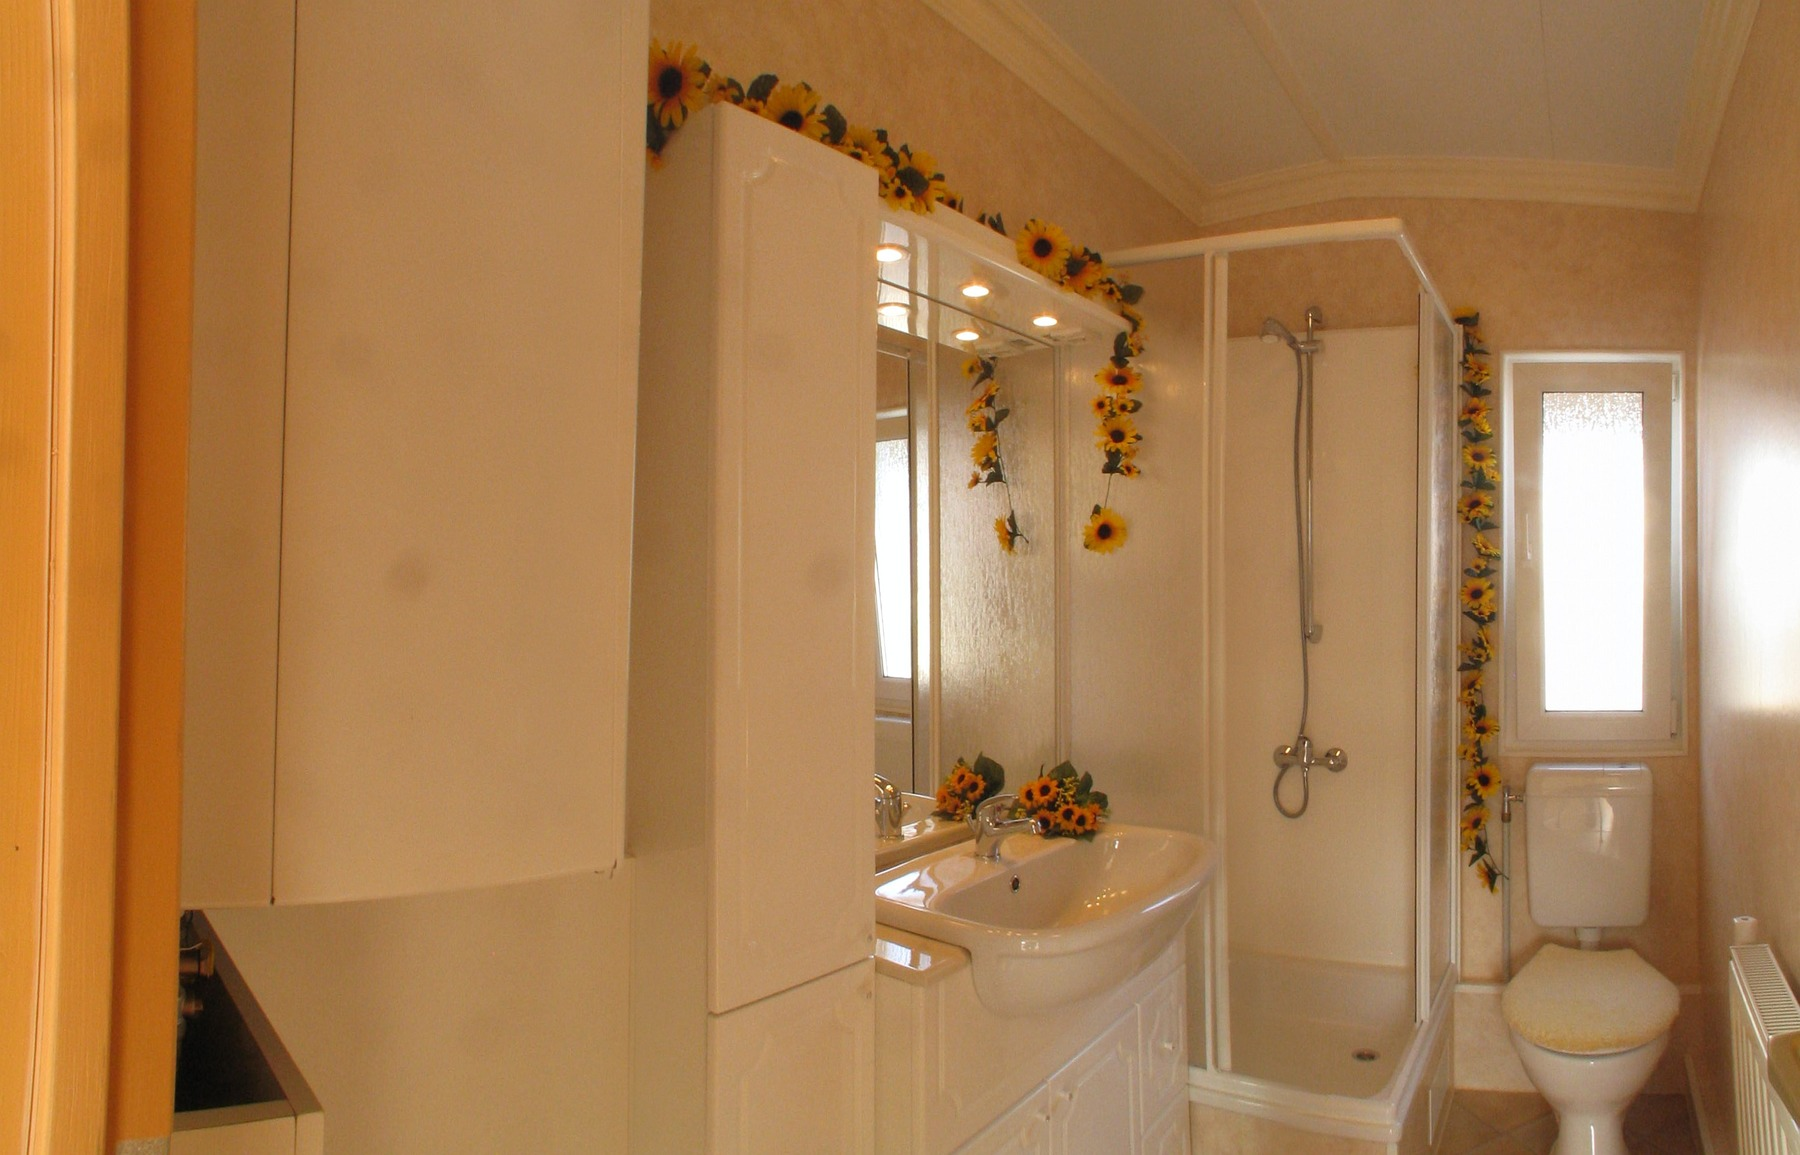 Bathroom in mobile home Tobs 860x610